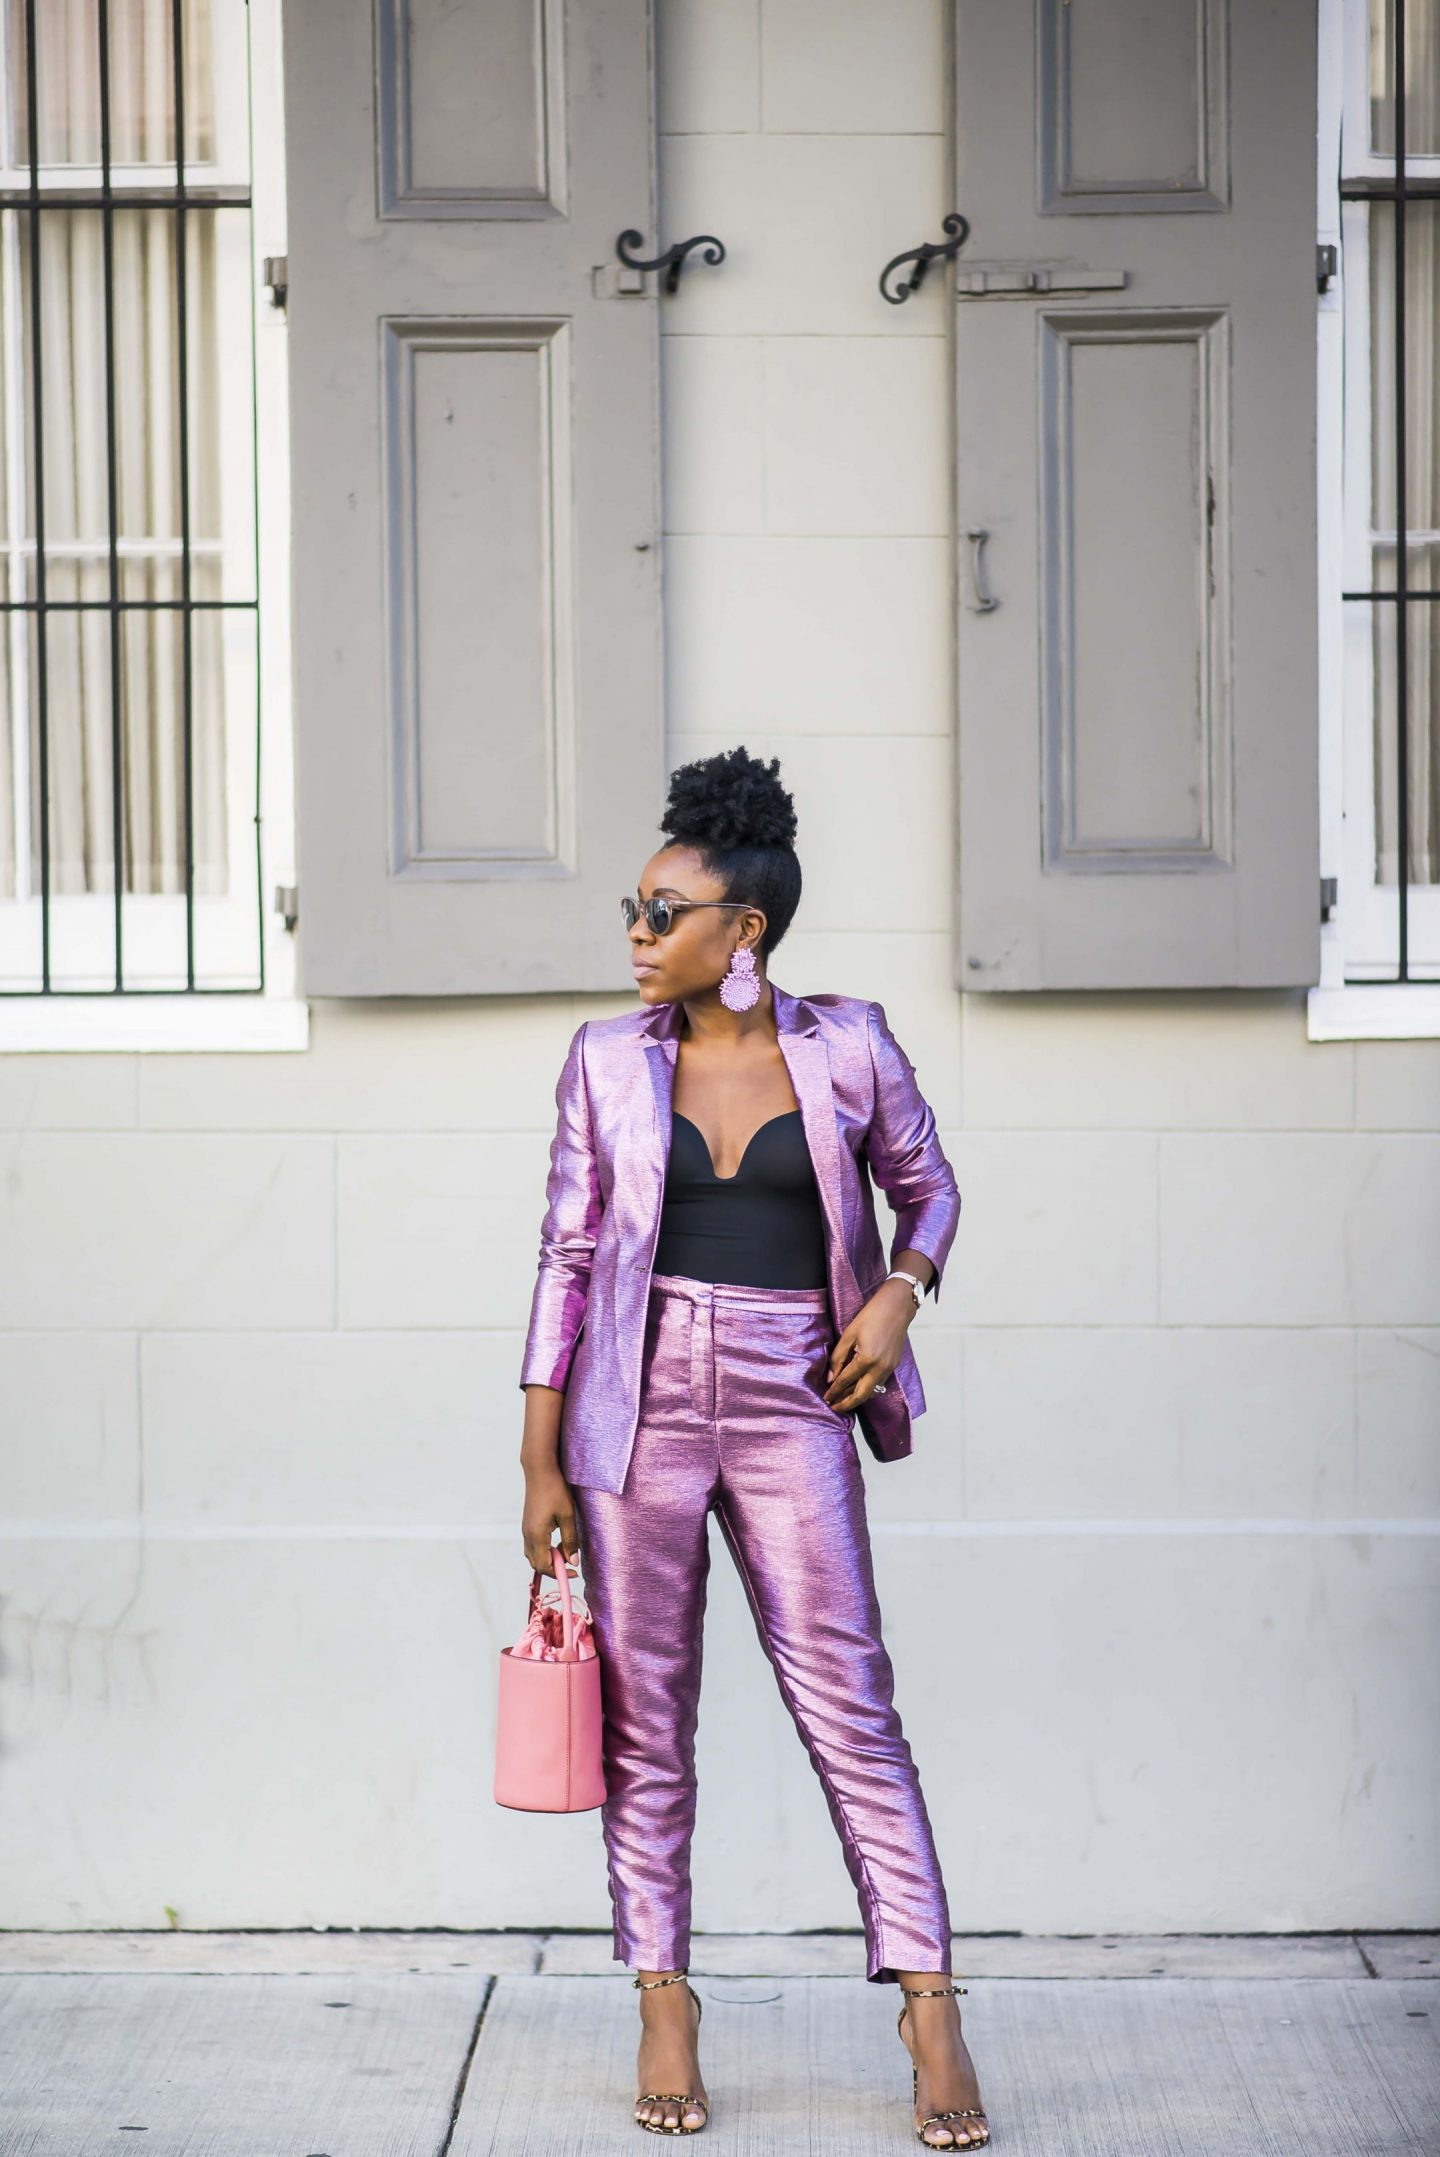 Metallic & bold colors for Fall and beyond